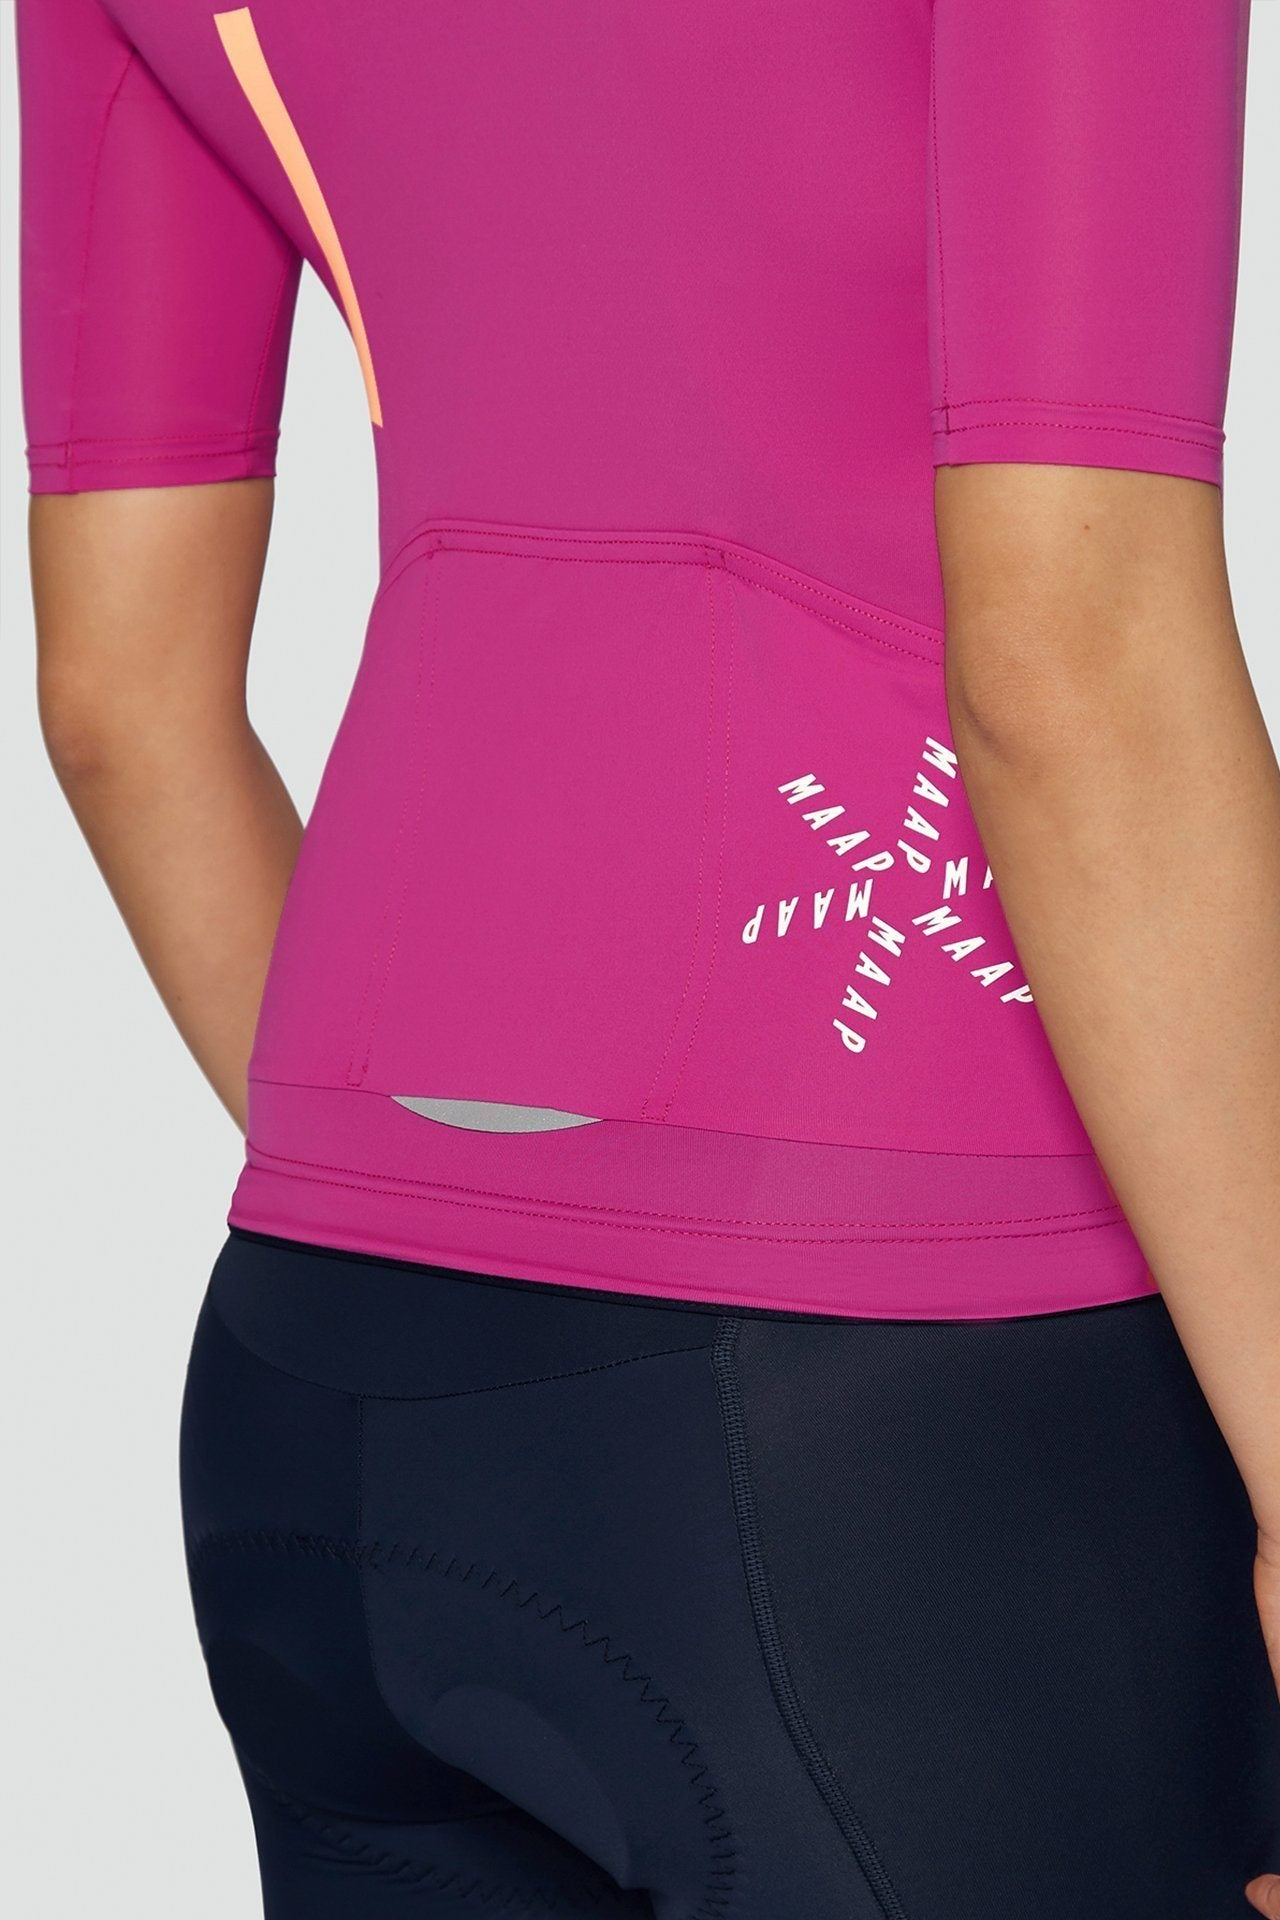 MAAP Women's Training Jersey - Shock Pink Cycling Jersey MAAP